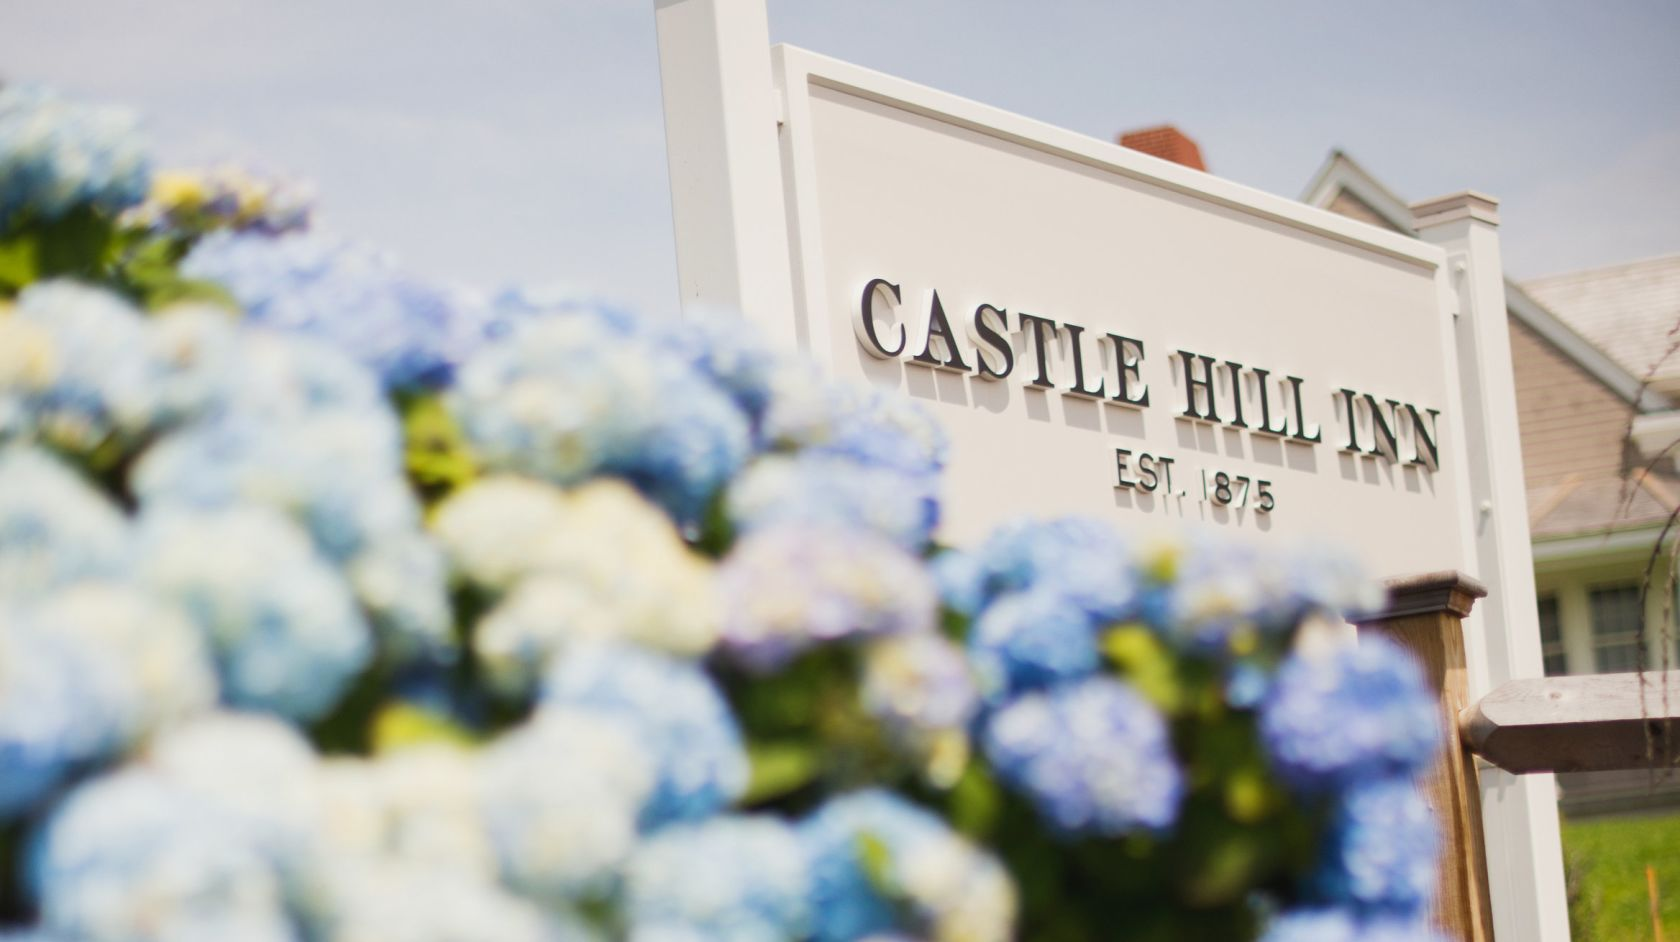 Castle Hill Inn sign outside